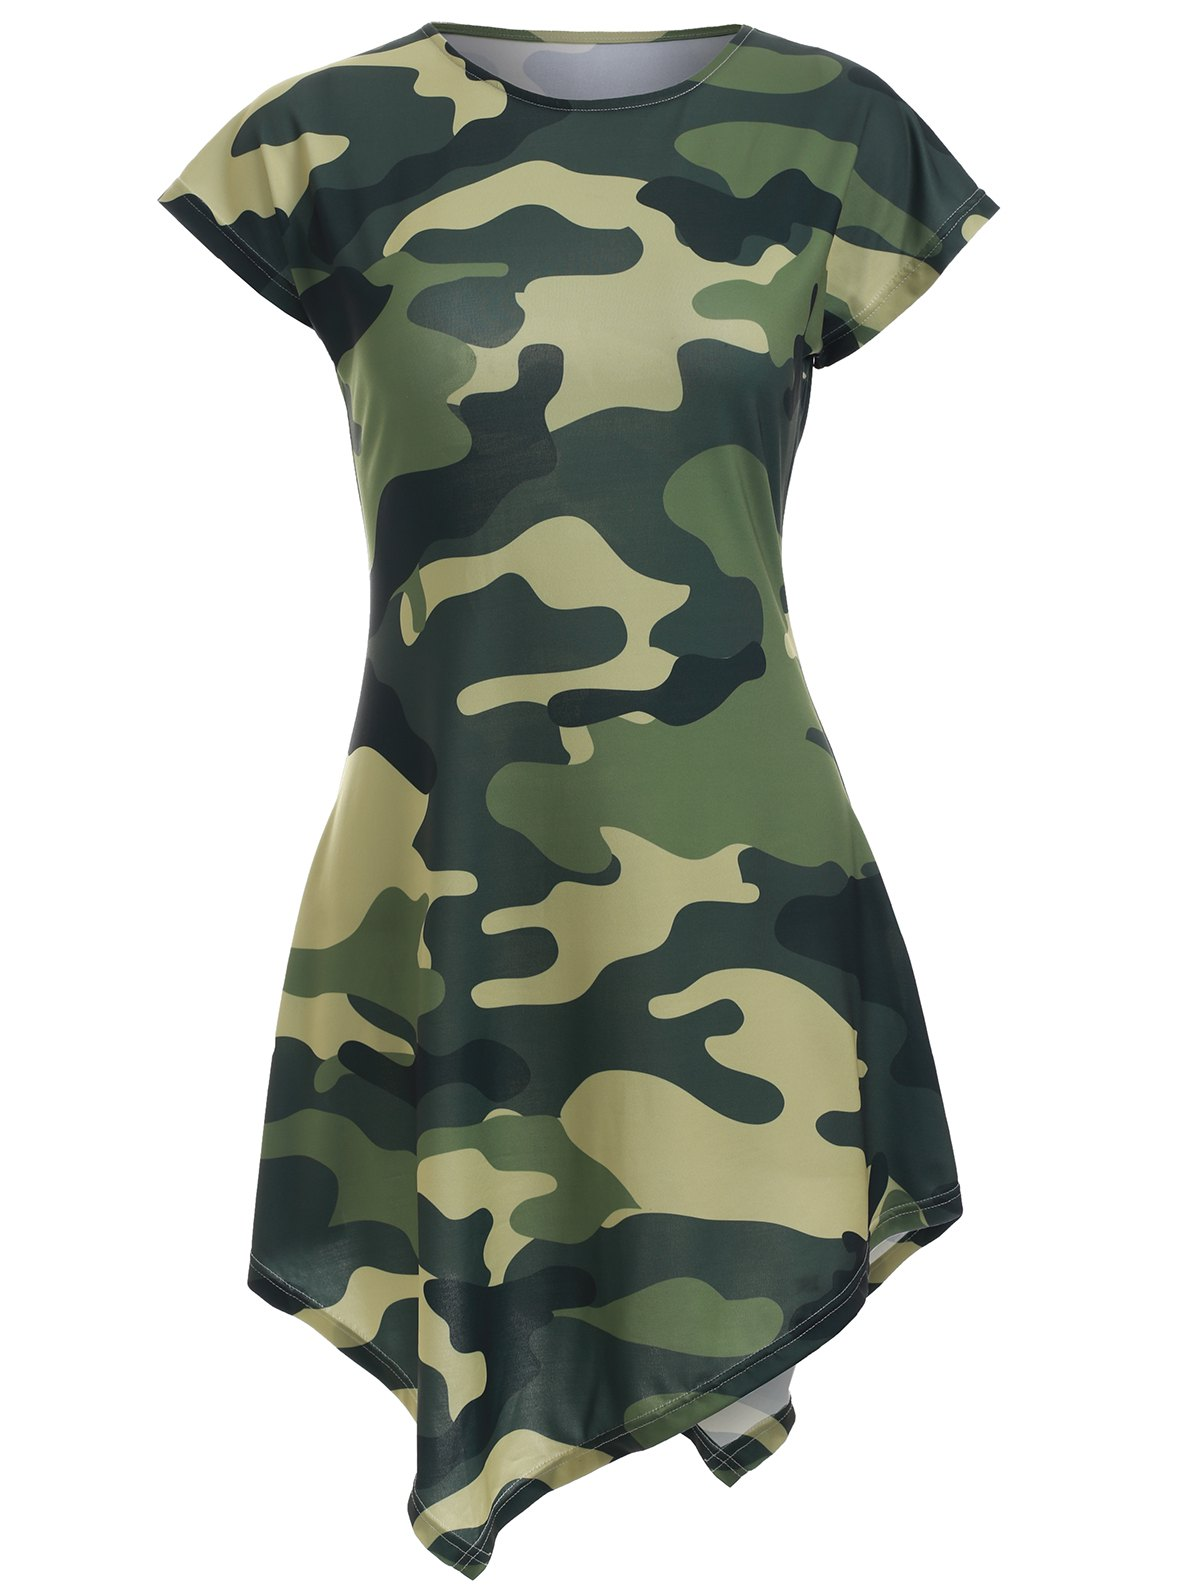 Camo Print Asymmetric Mini Dress - CAMOUFLAGE XL